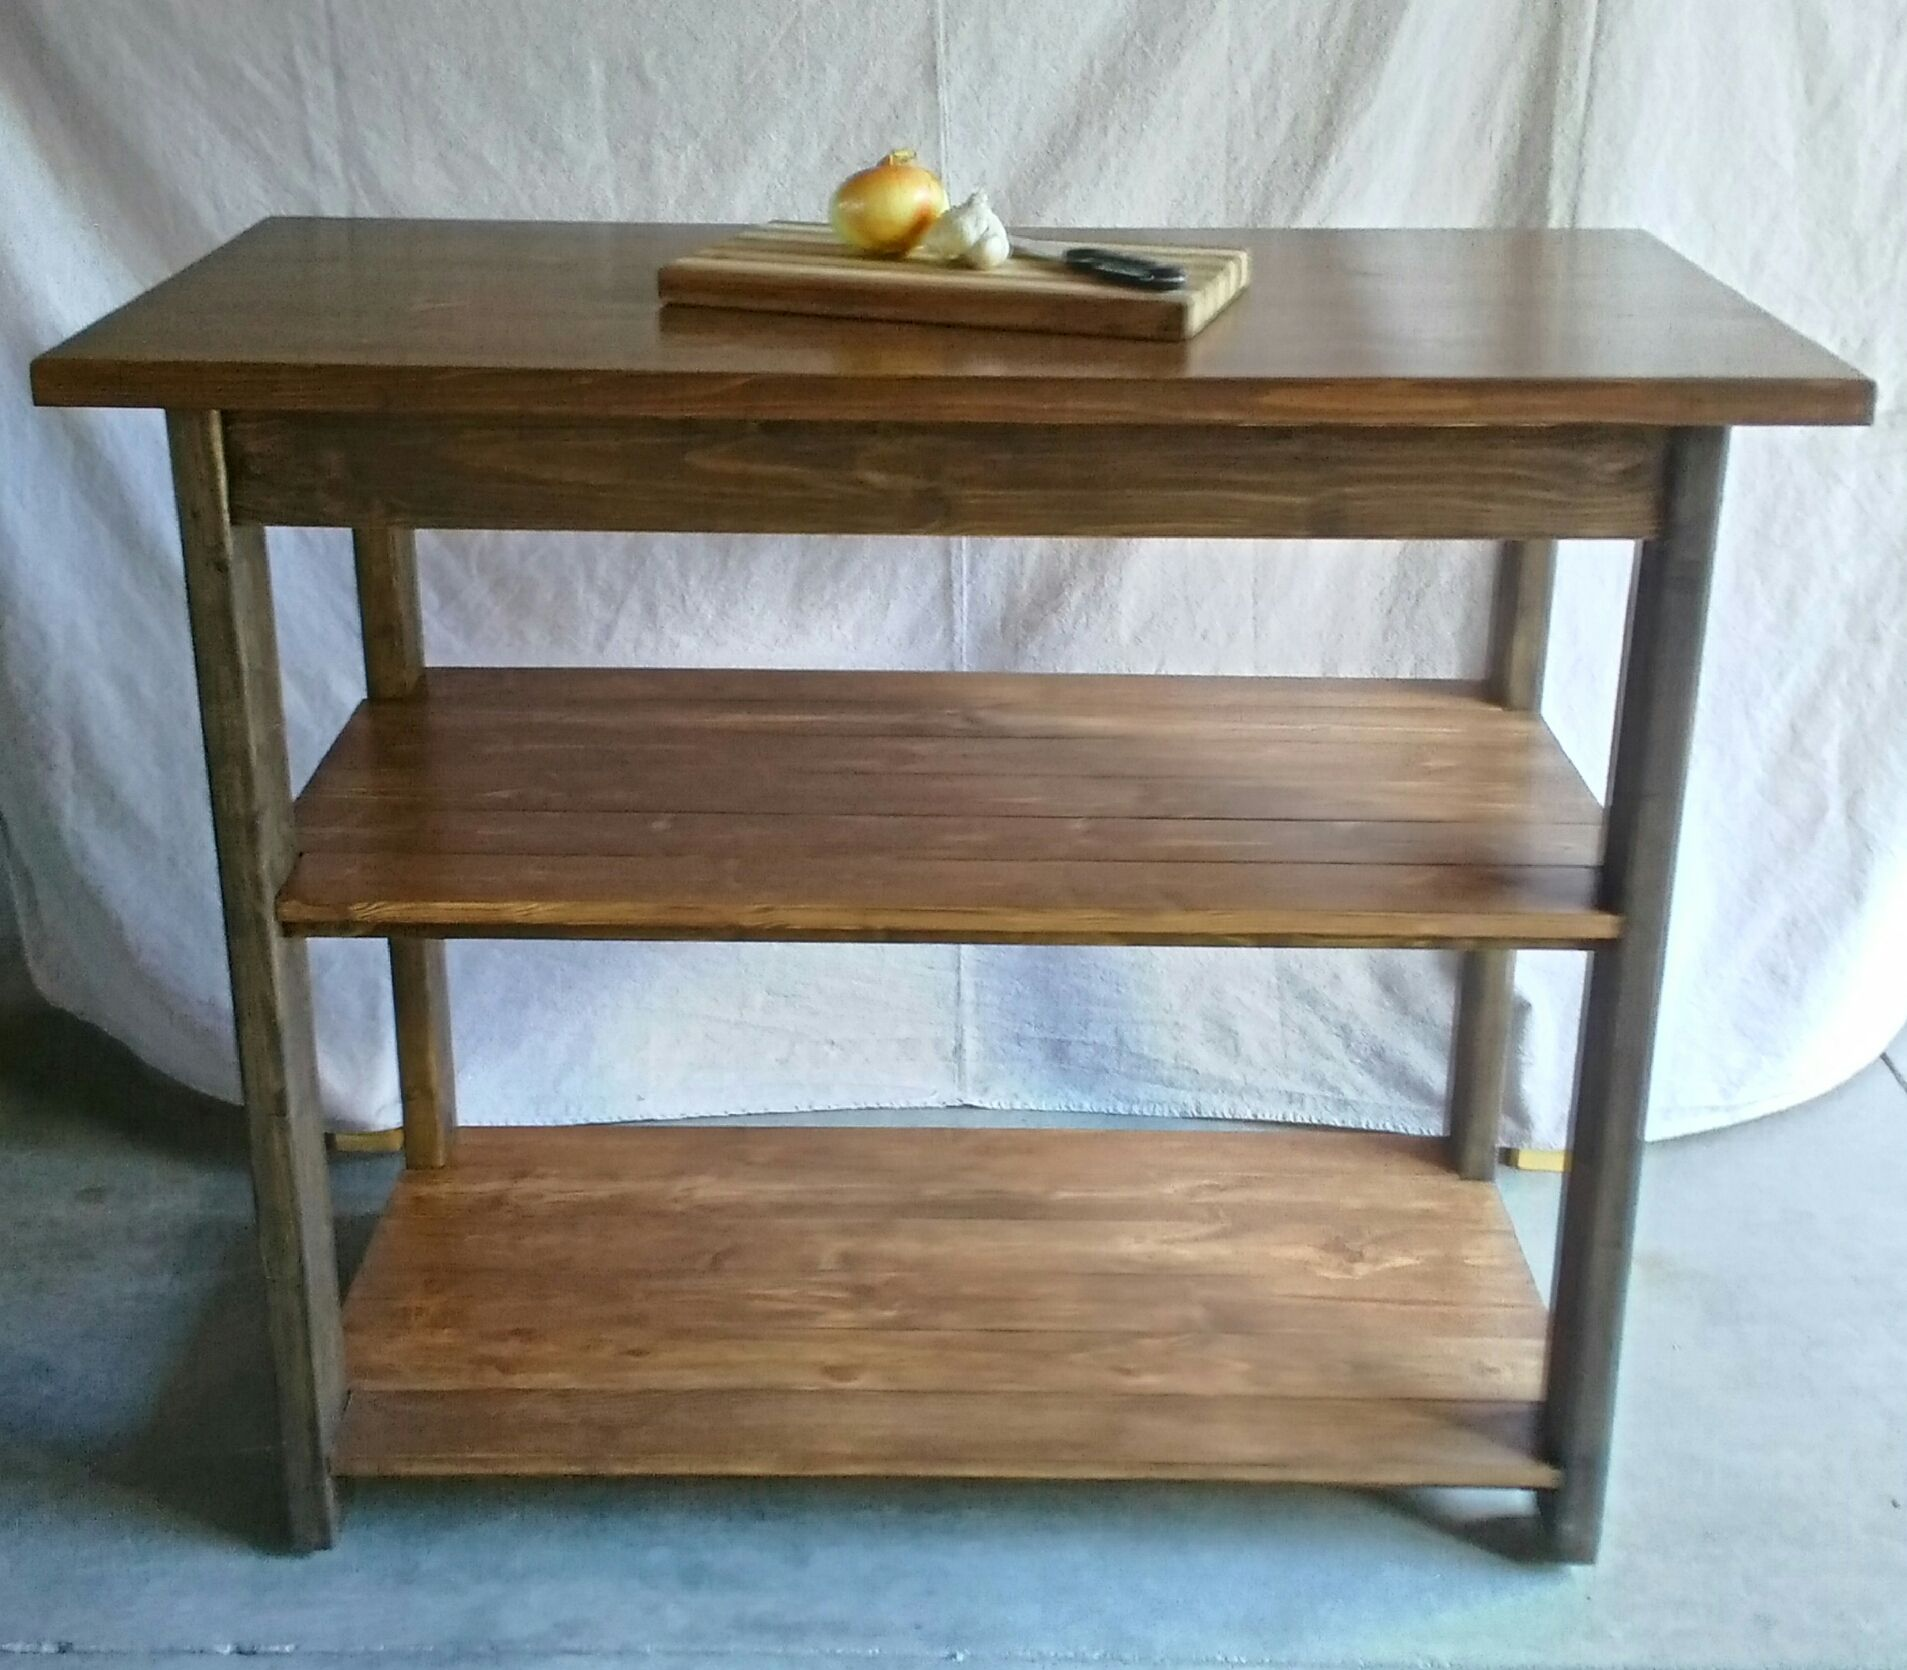 2 Shelf Entry Table / Kitchen Island selling for $250,00 - Port Clinton, Ohio